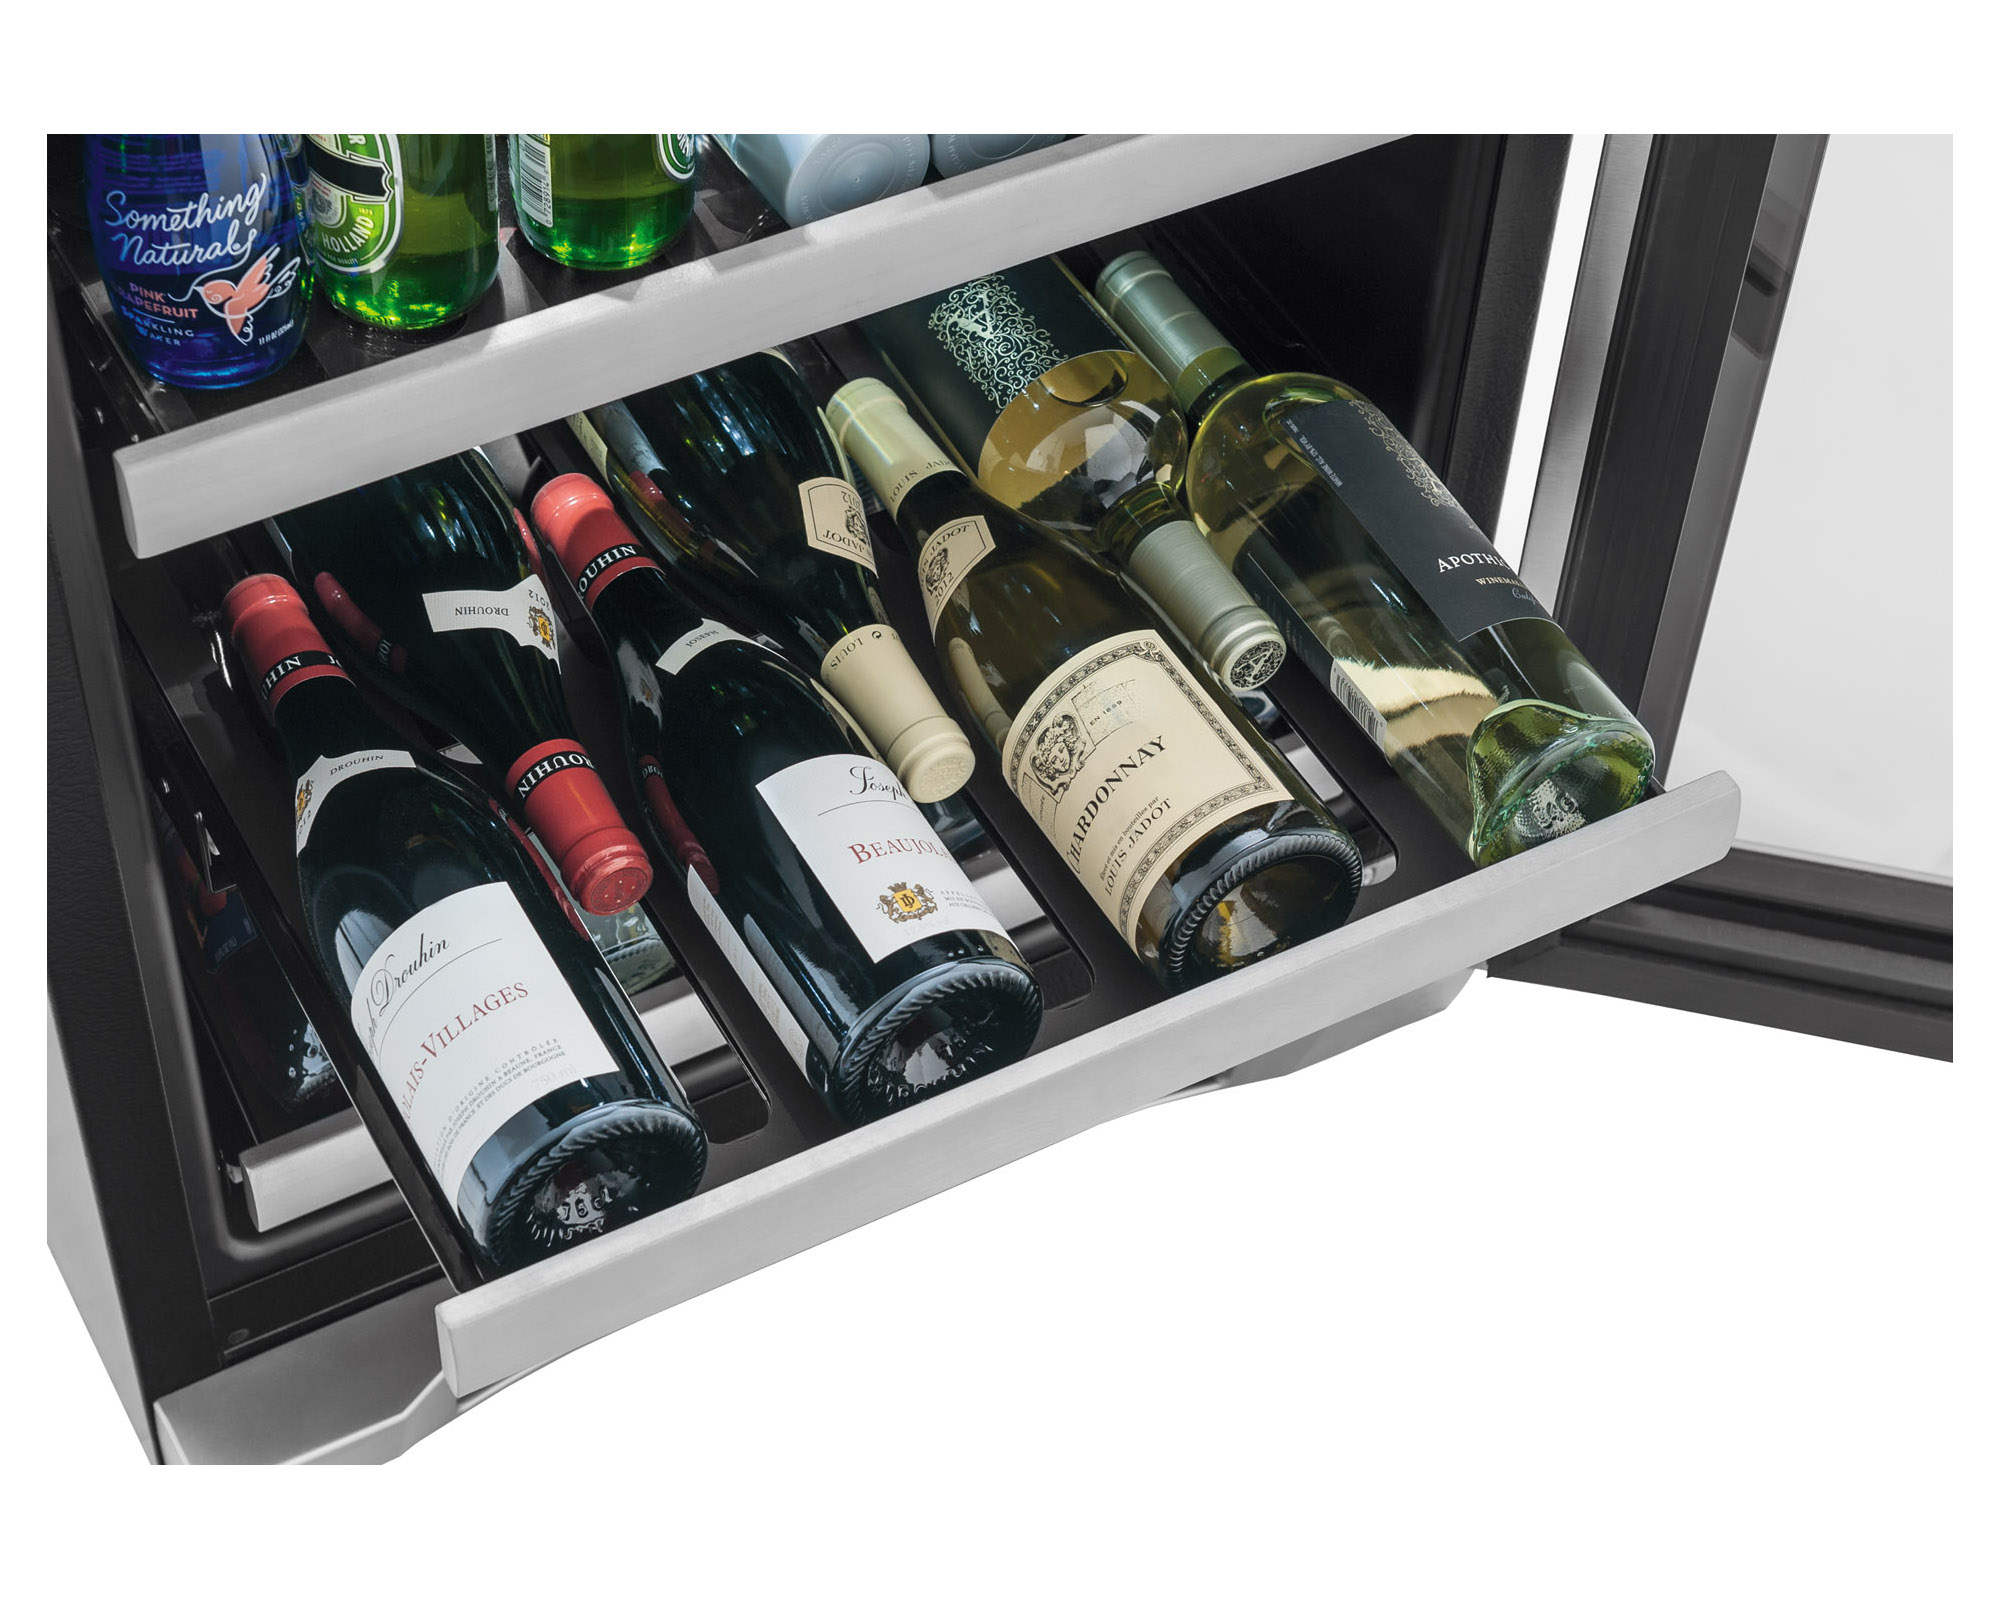 Electrolux EI24BC10QS 5.43 cu. ft. Right Hinge Beverage Center - Stainless Steel